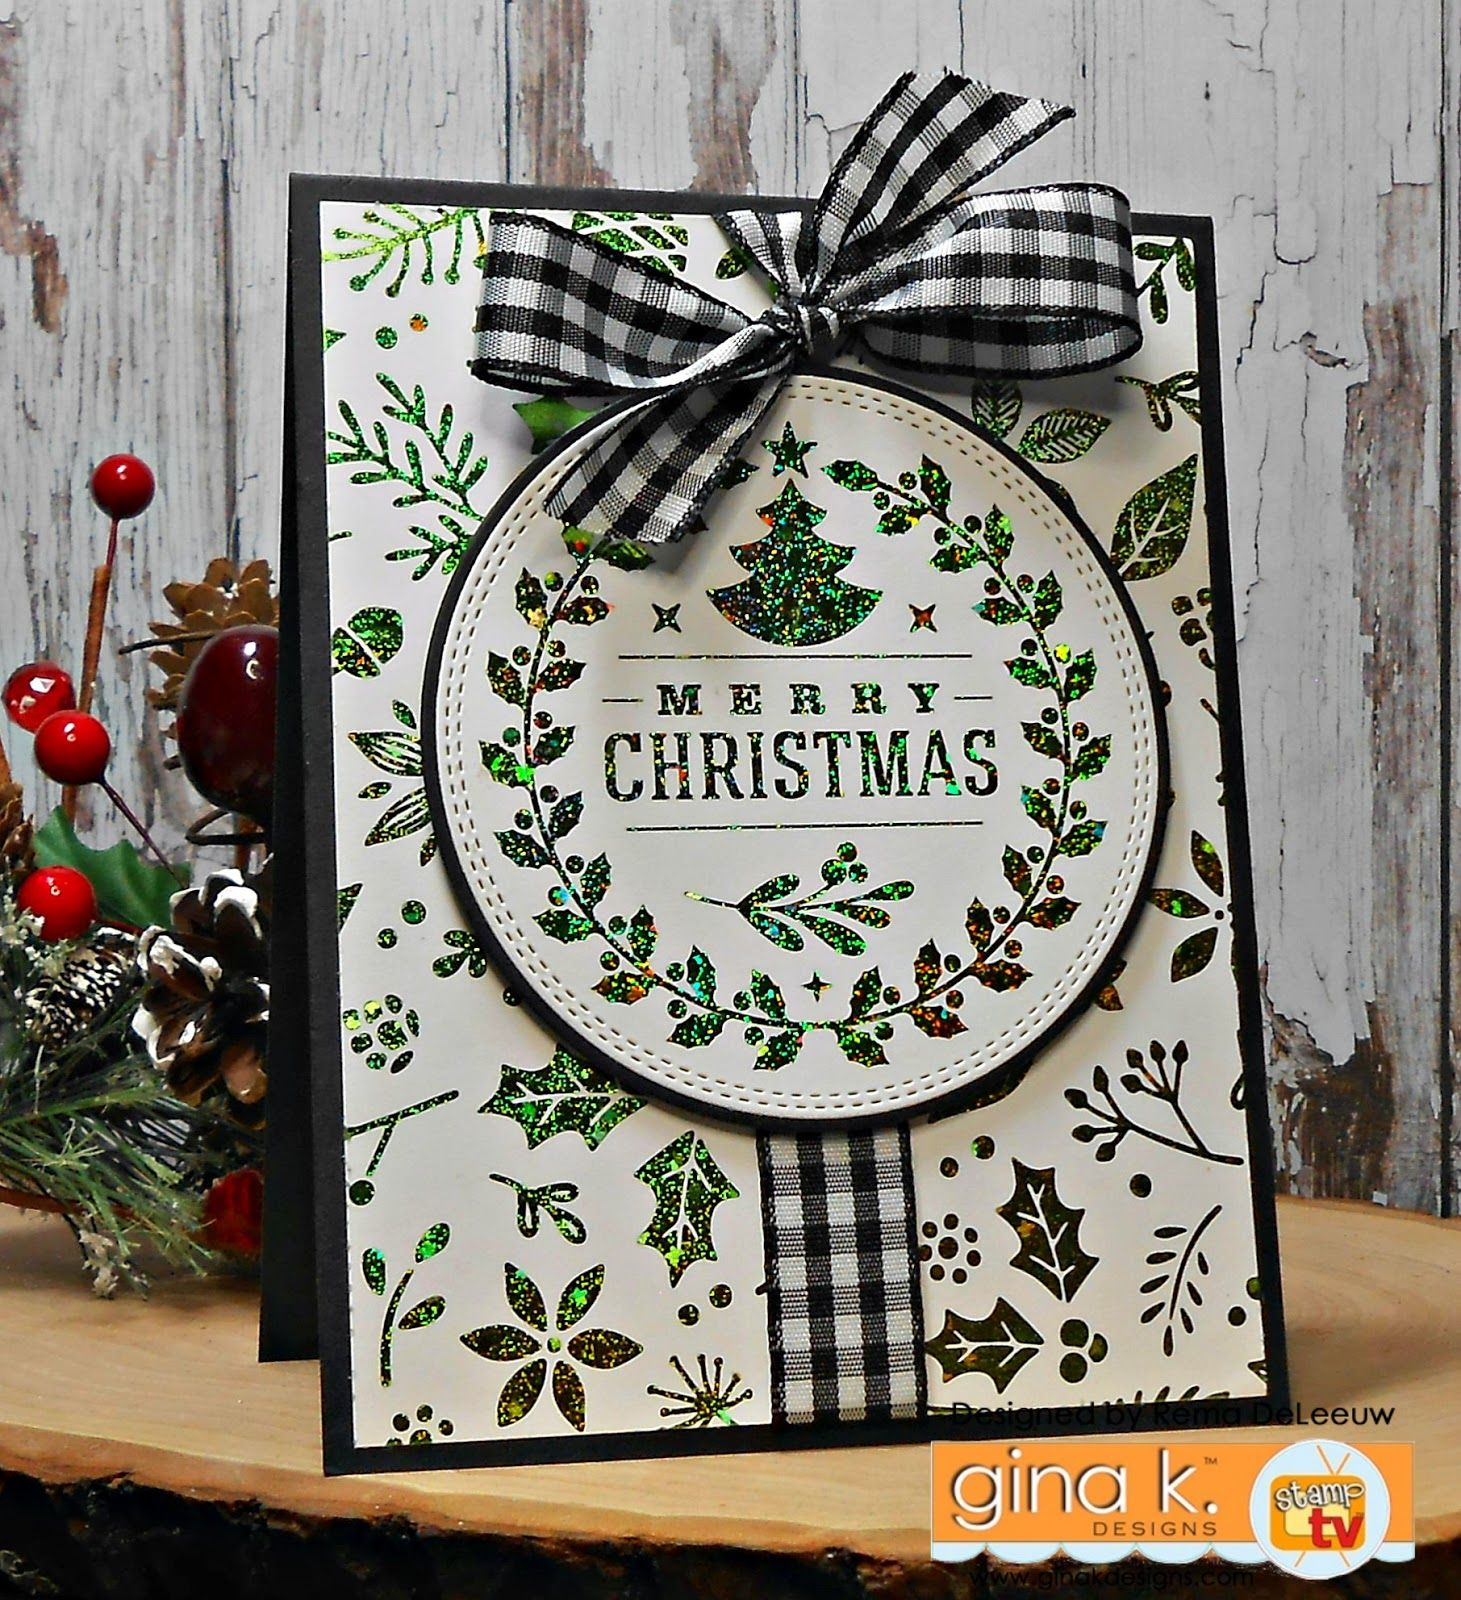 the cast and crew for gina k designs welcomes you to another fabulous blog hop celebrating the newly released gkdtherm o web - A Country Christmas Cast